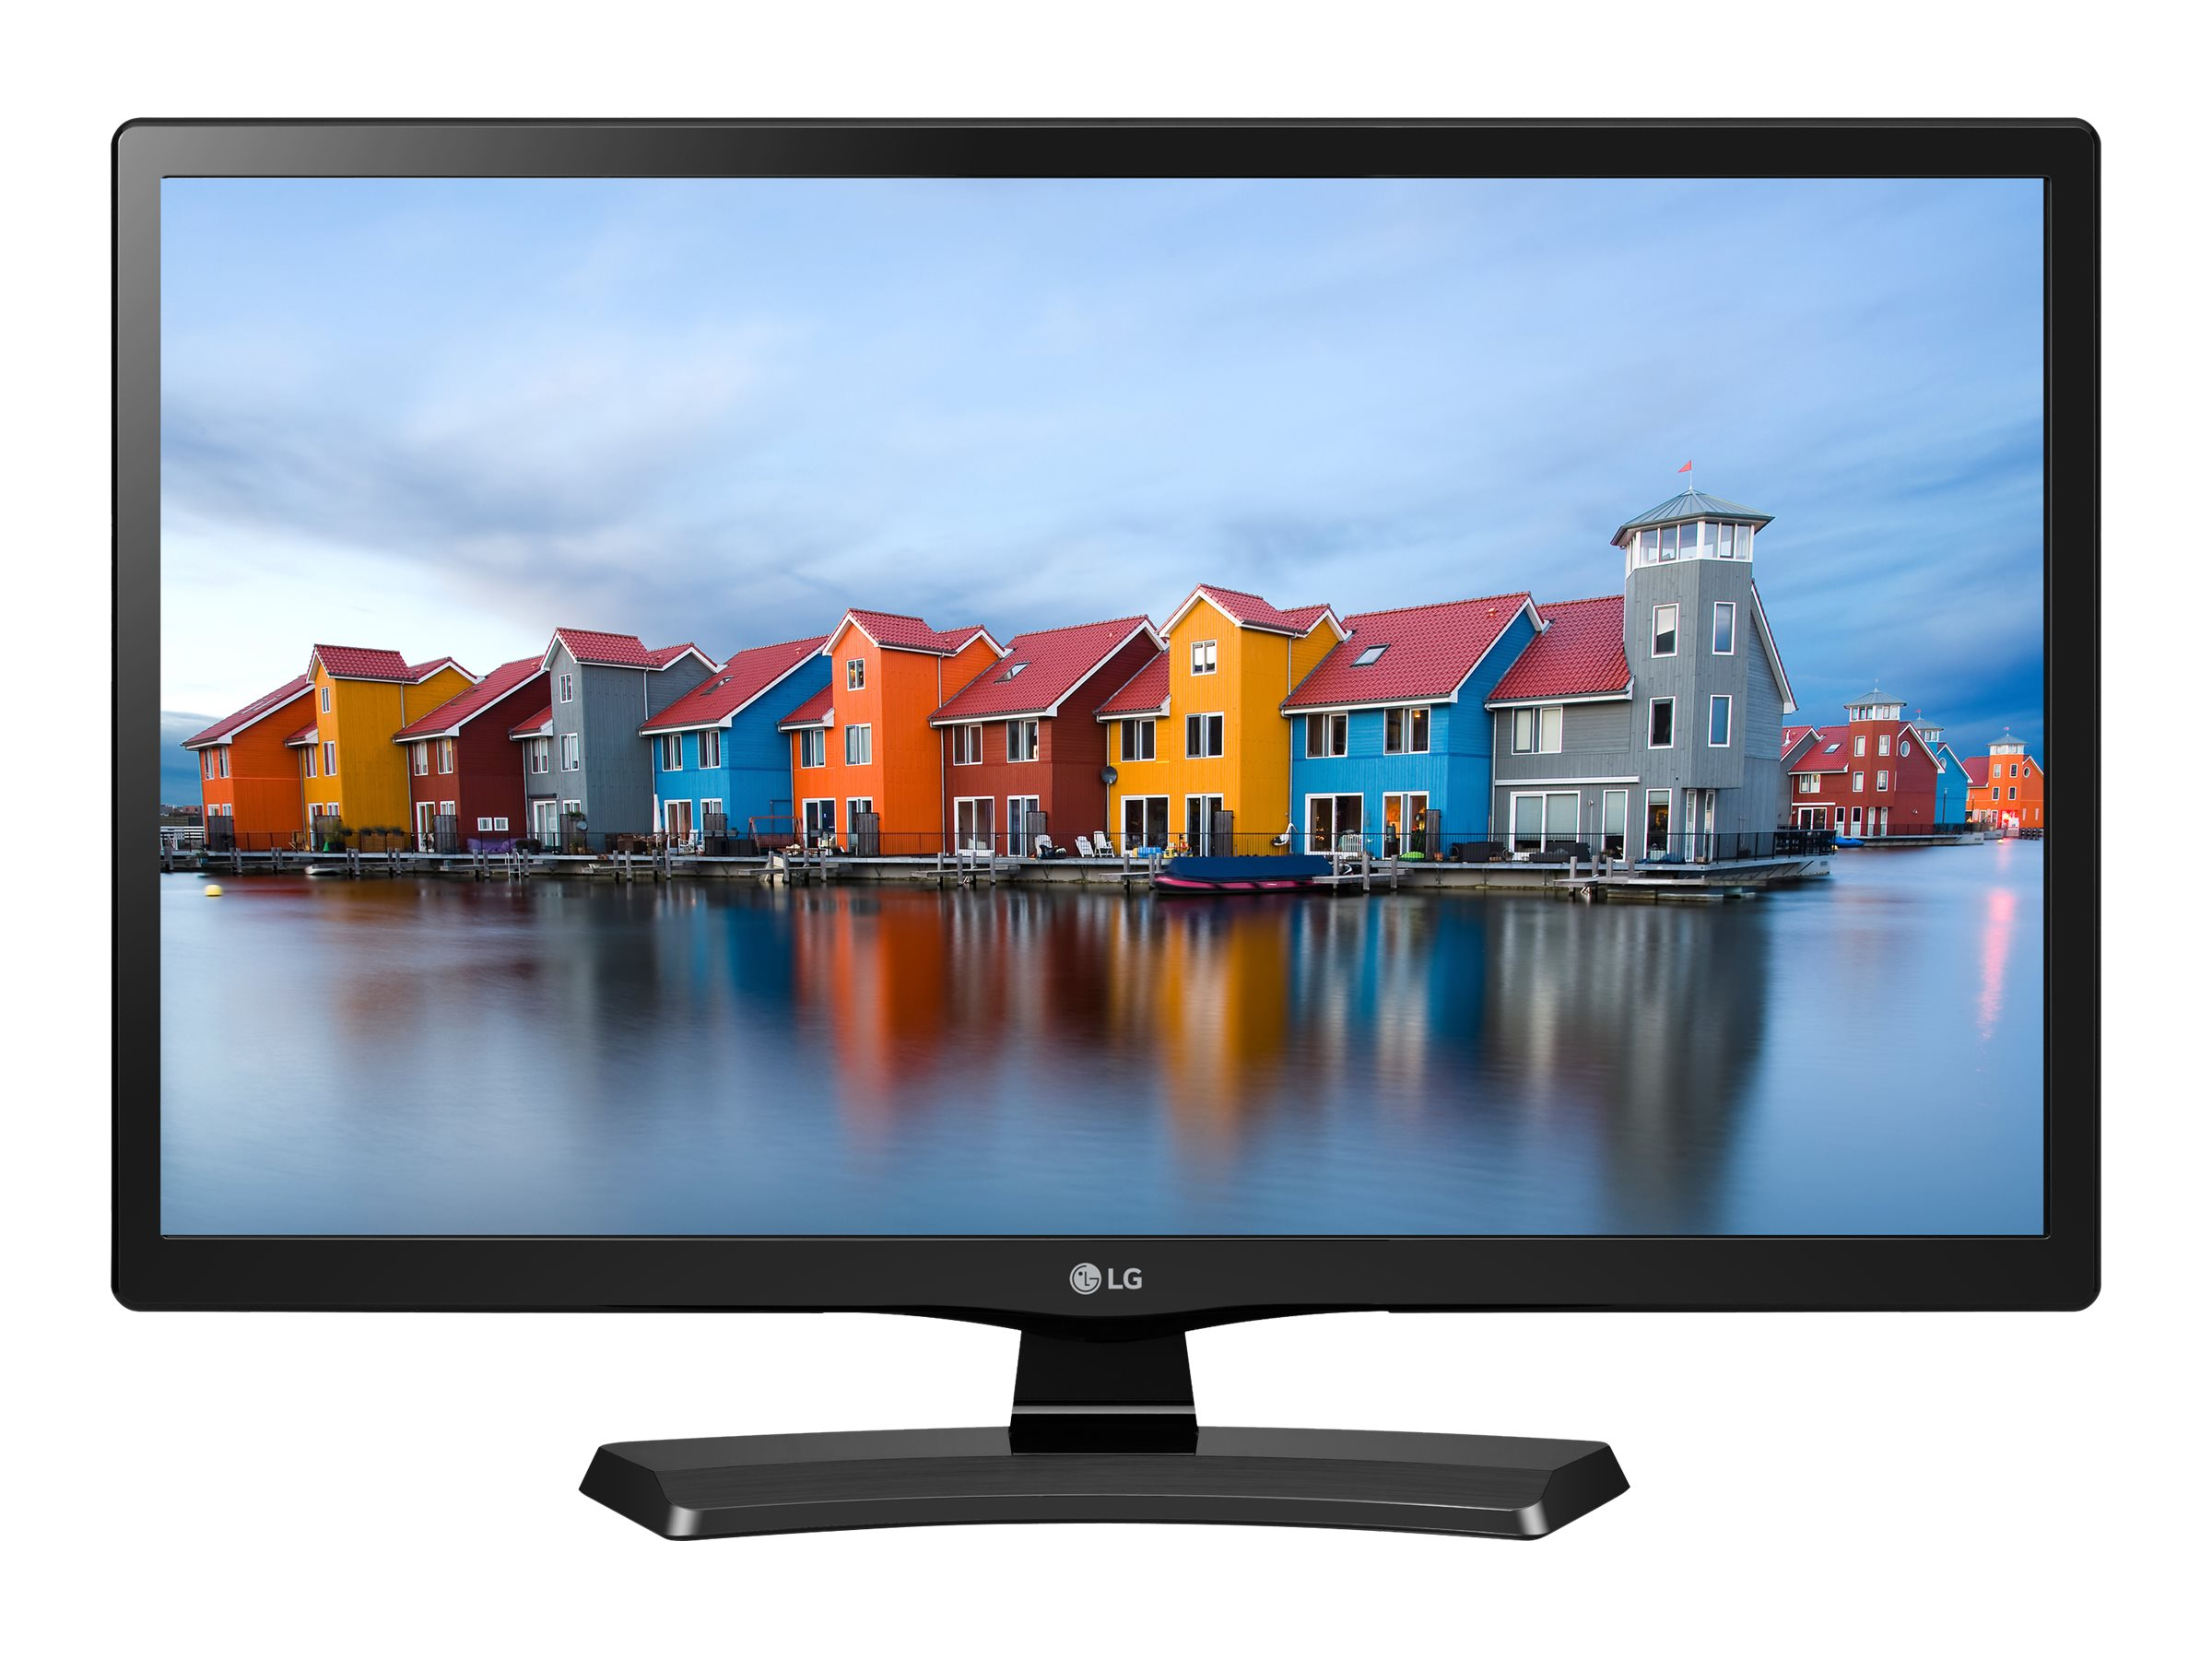 LG 21.5 LH4530 Full HD LED-LCD TV, Black, 22LH4530